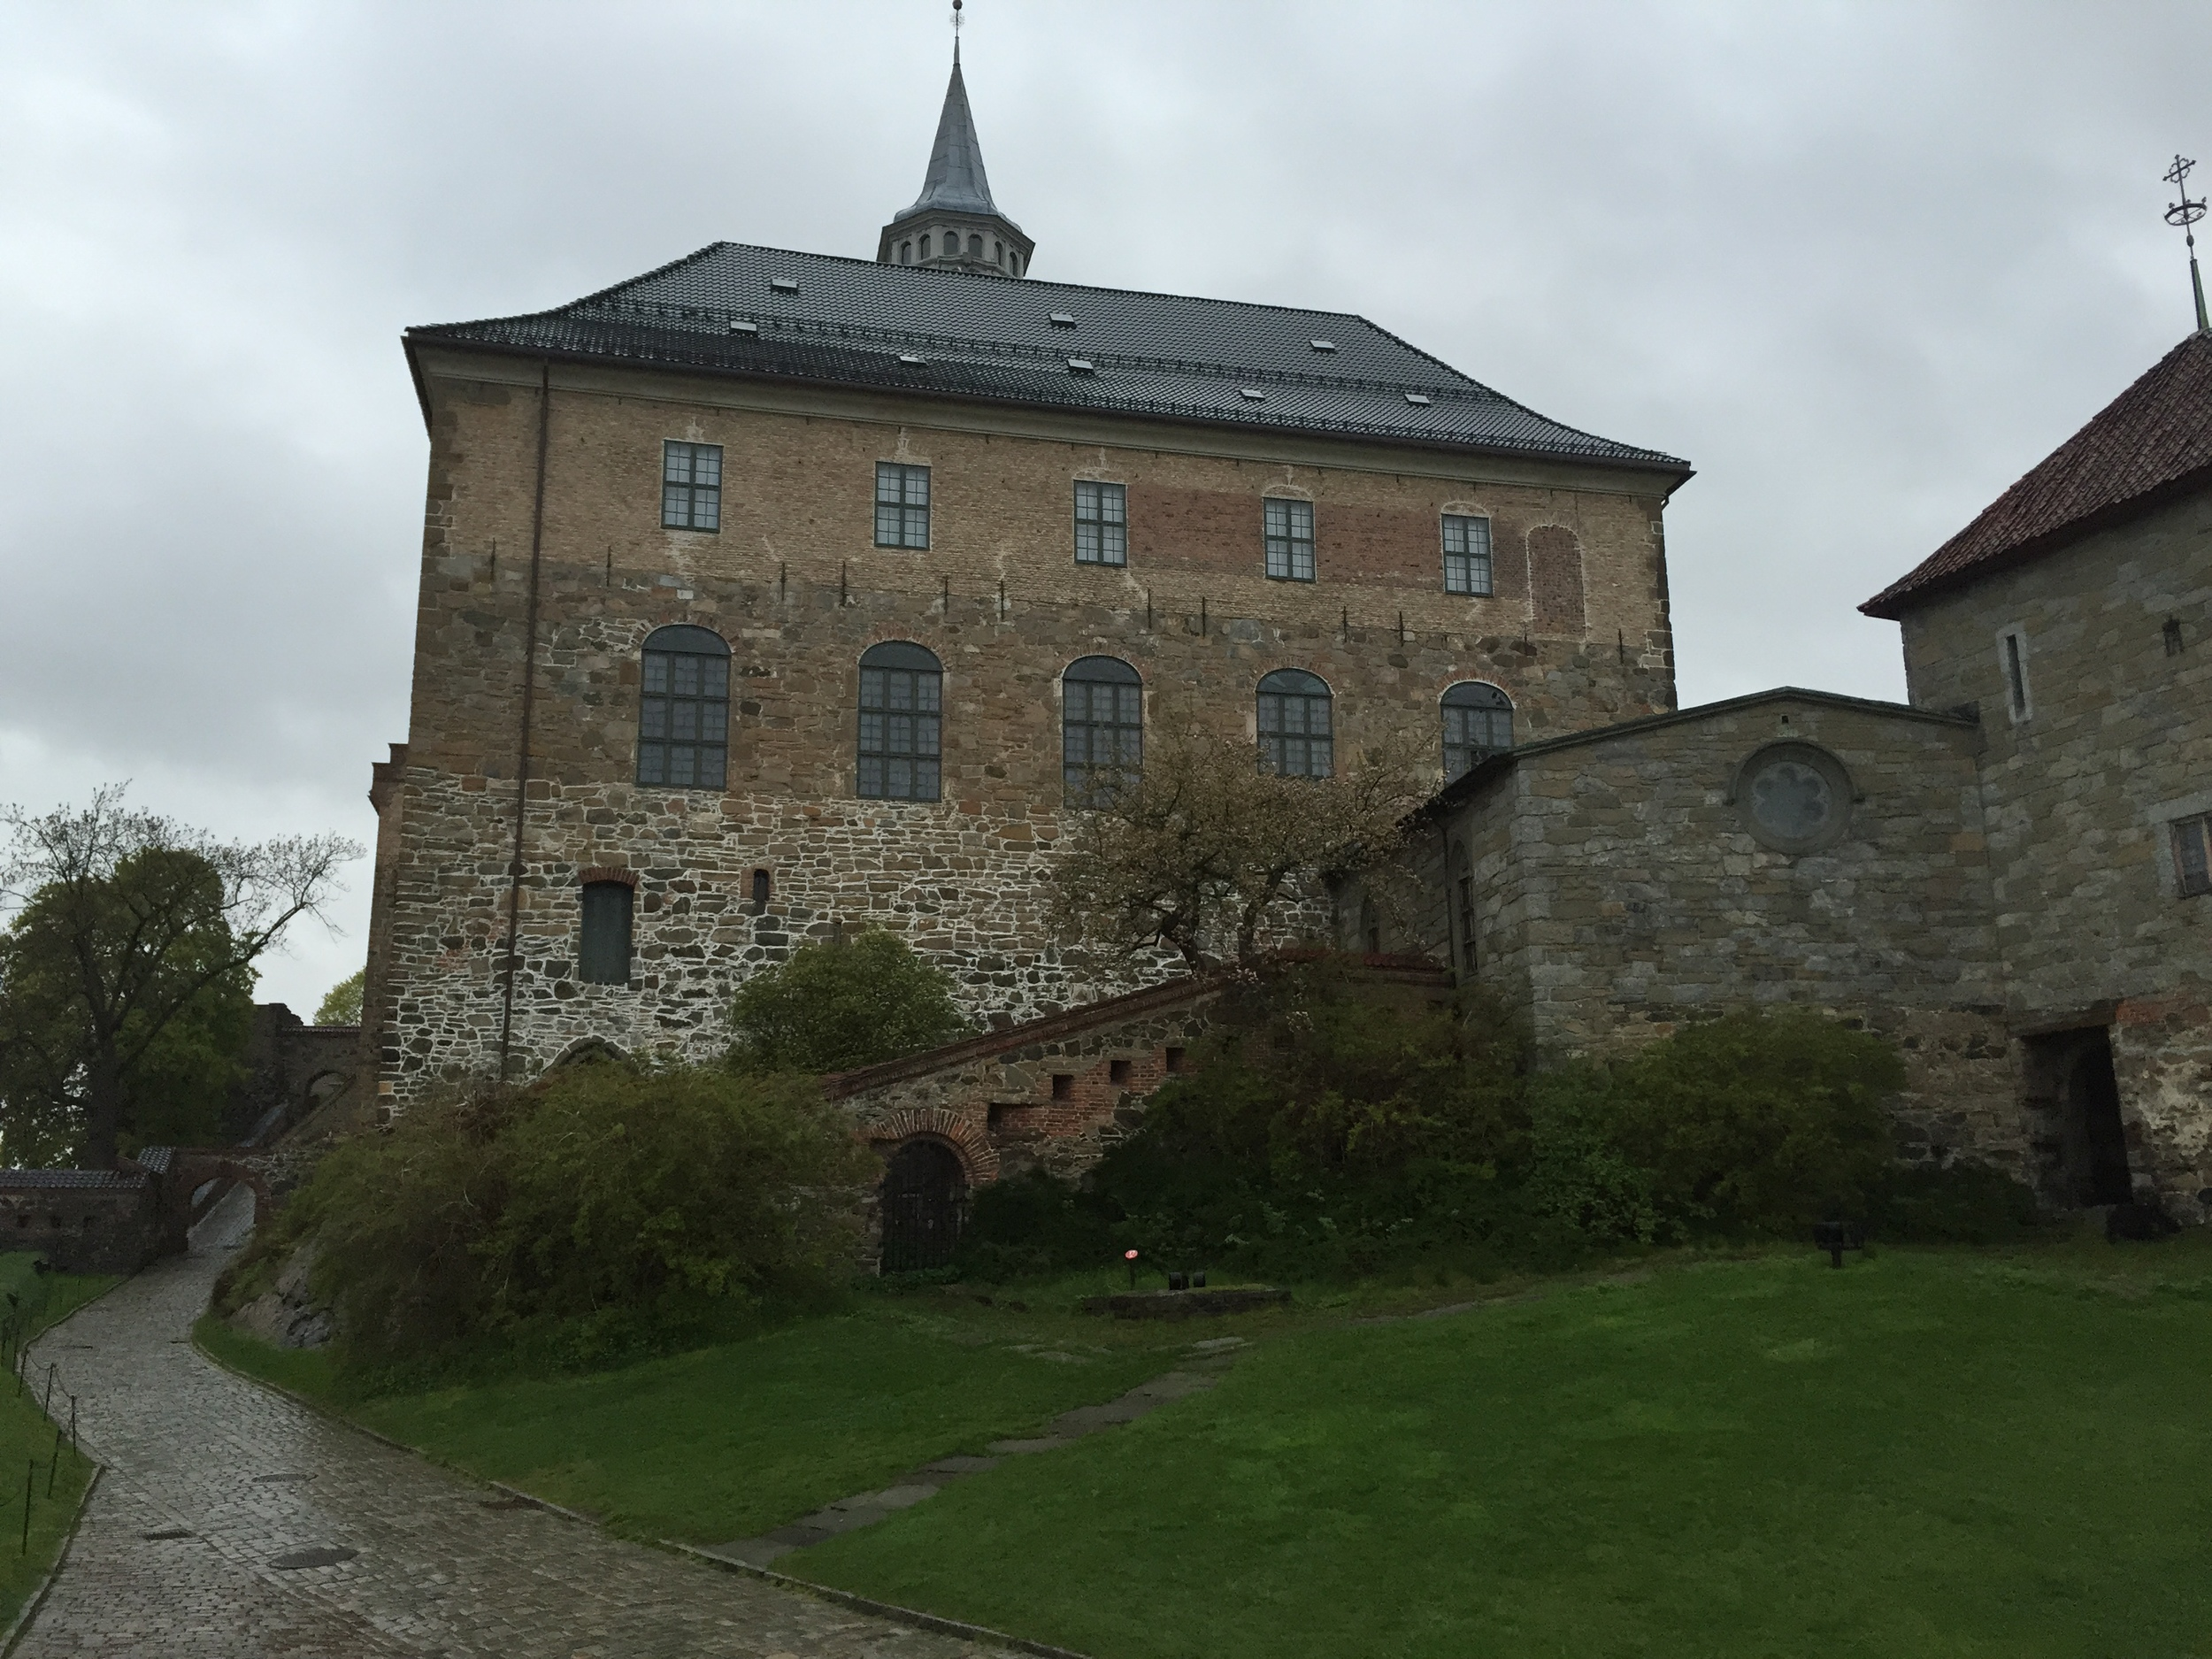 And I finally made it Oslo, where there was an ancient fortress.